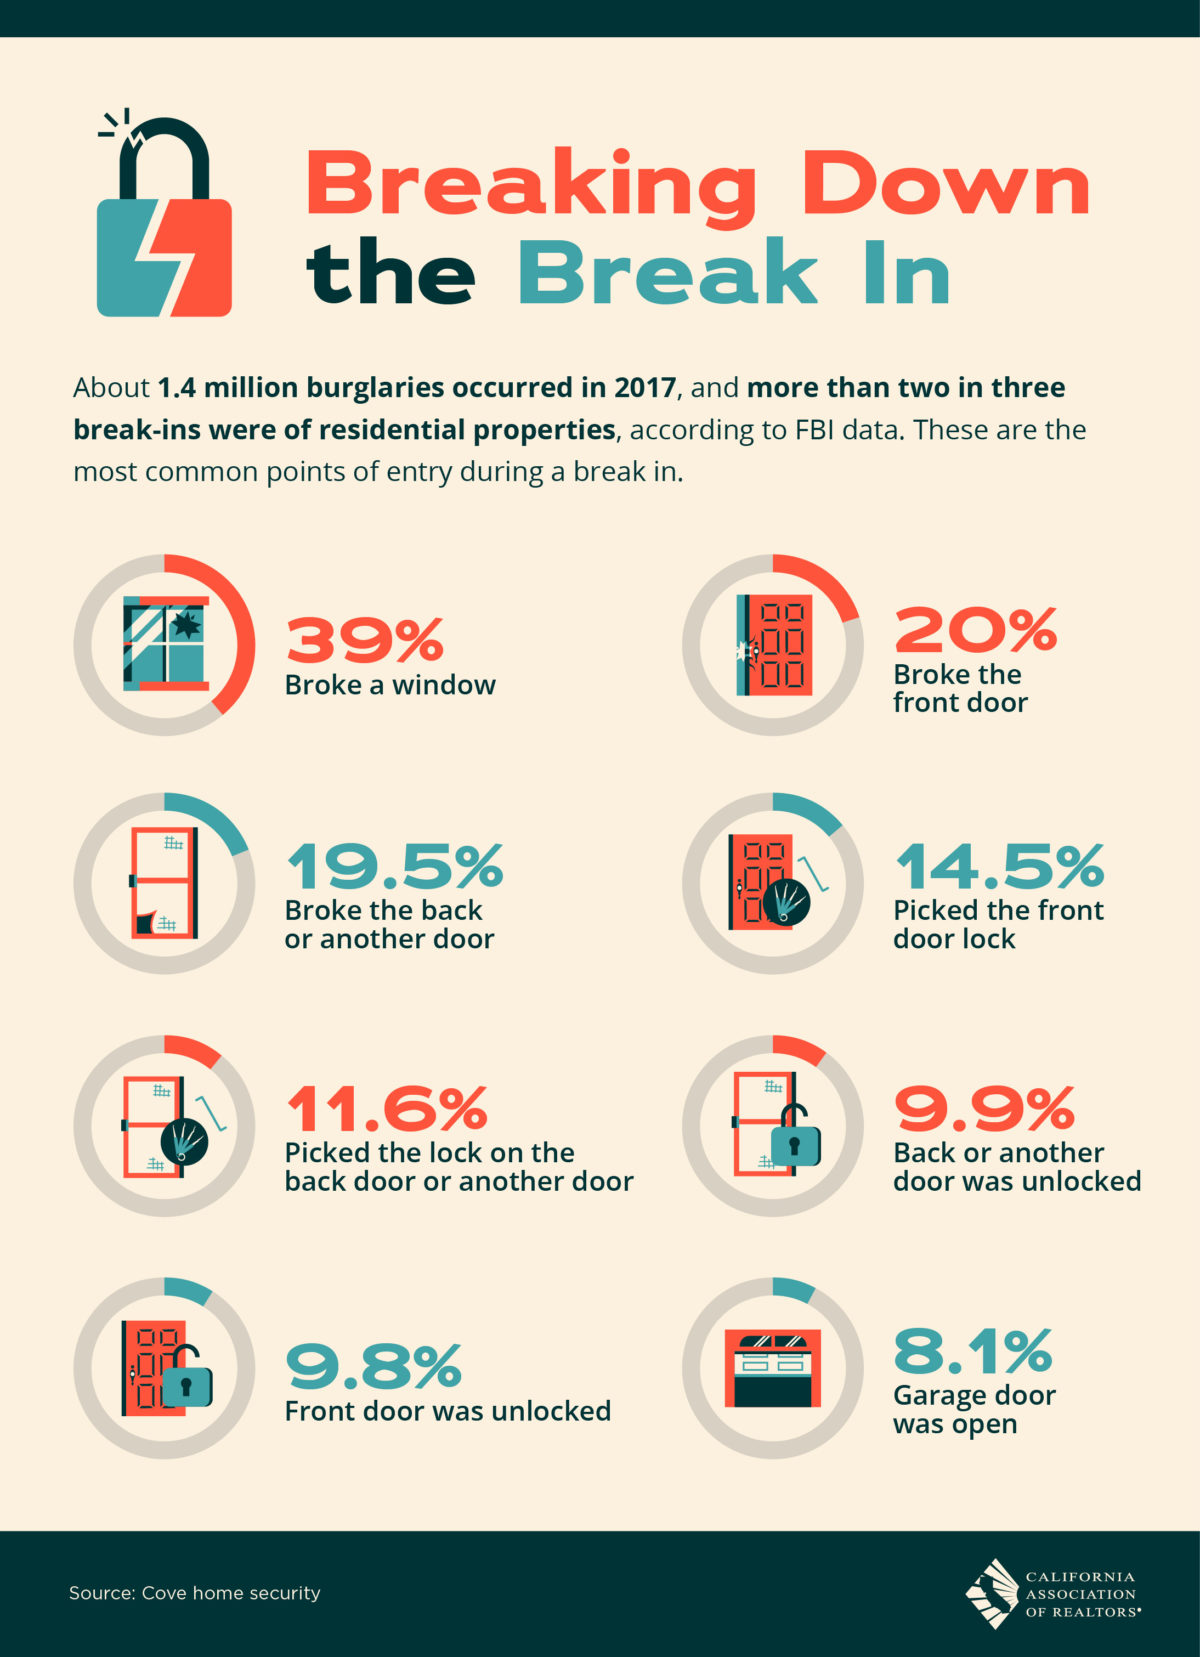 Home Break-in Stats